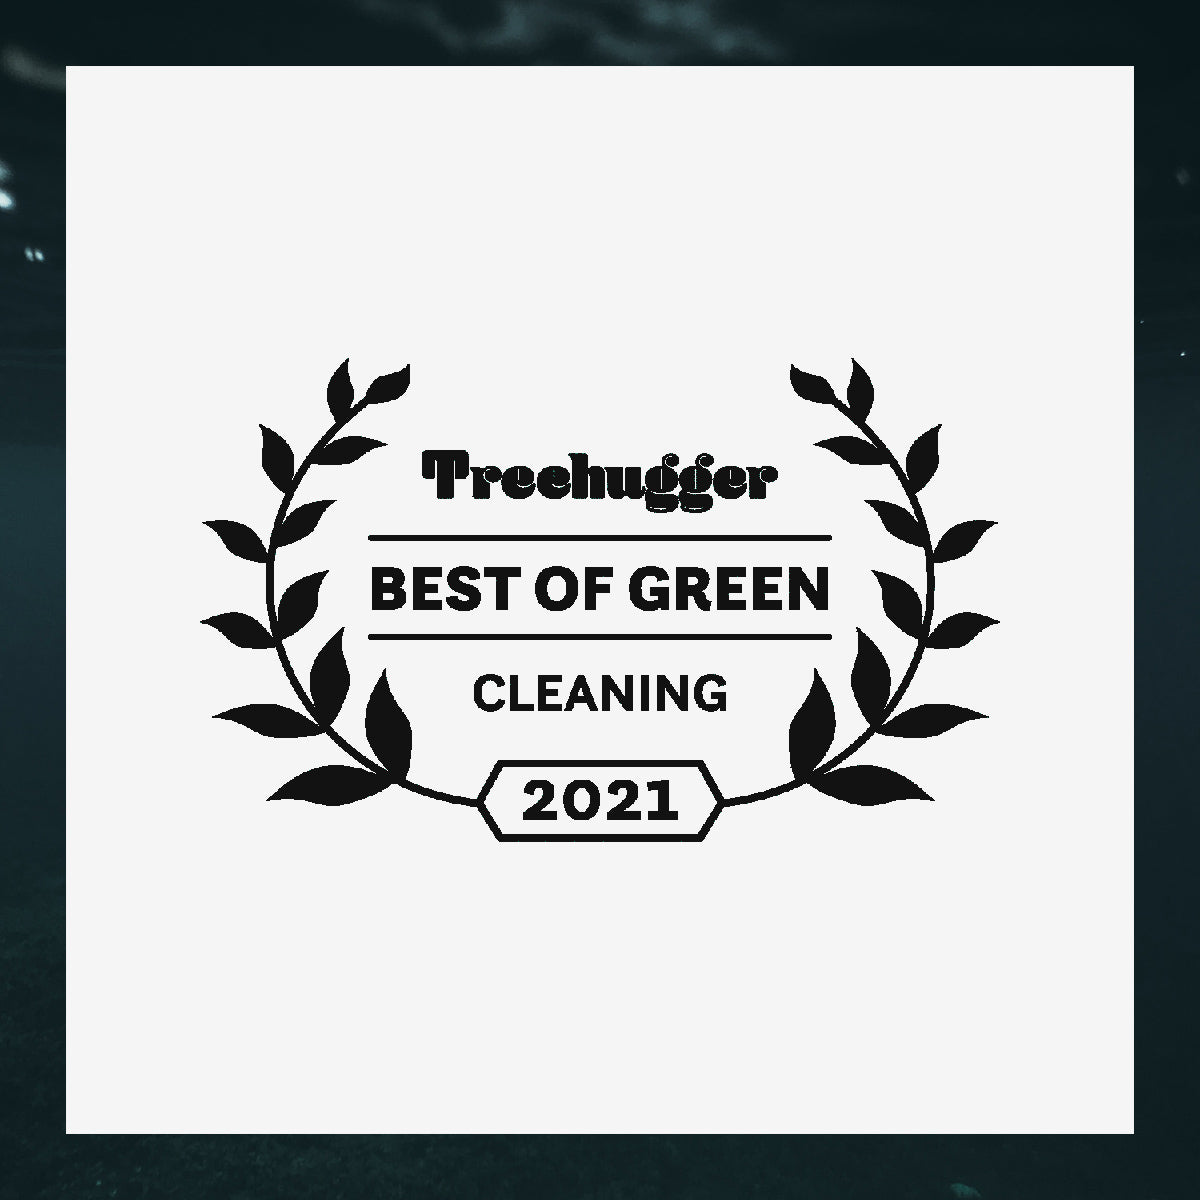 Sqwishful is a winner of the 2021 Treehugger Green Cleaning Awards